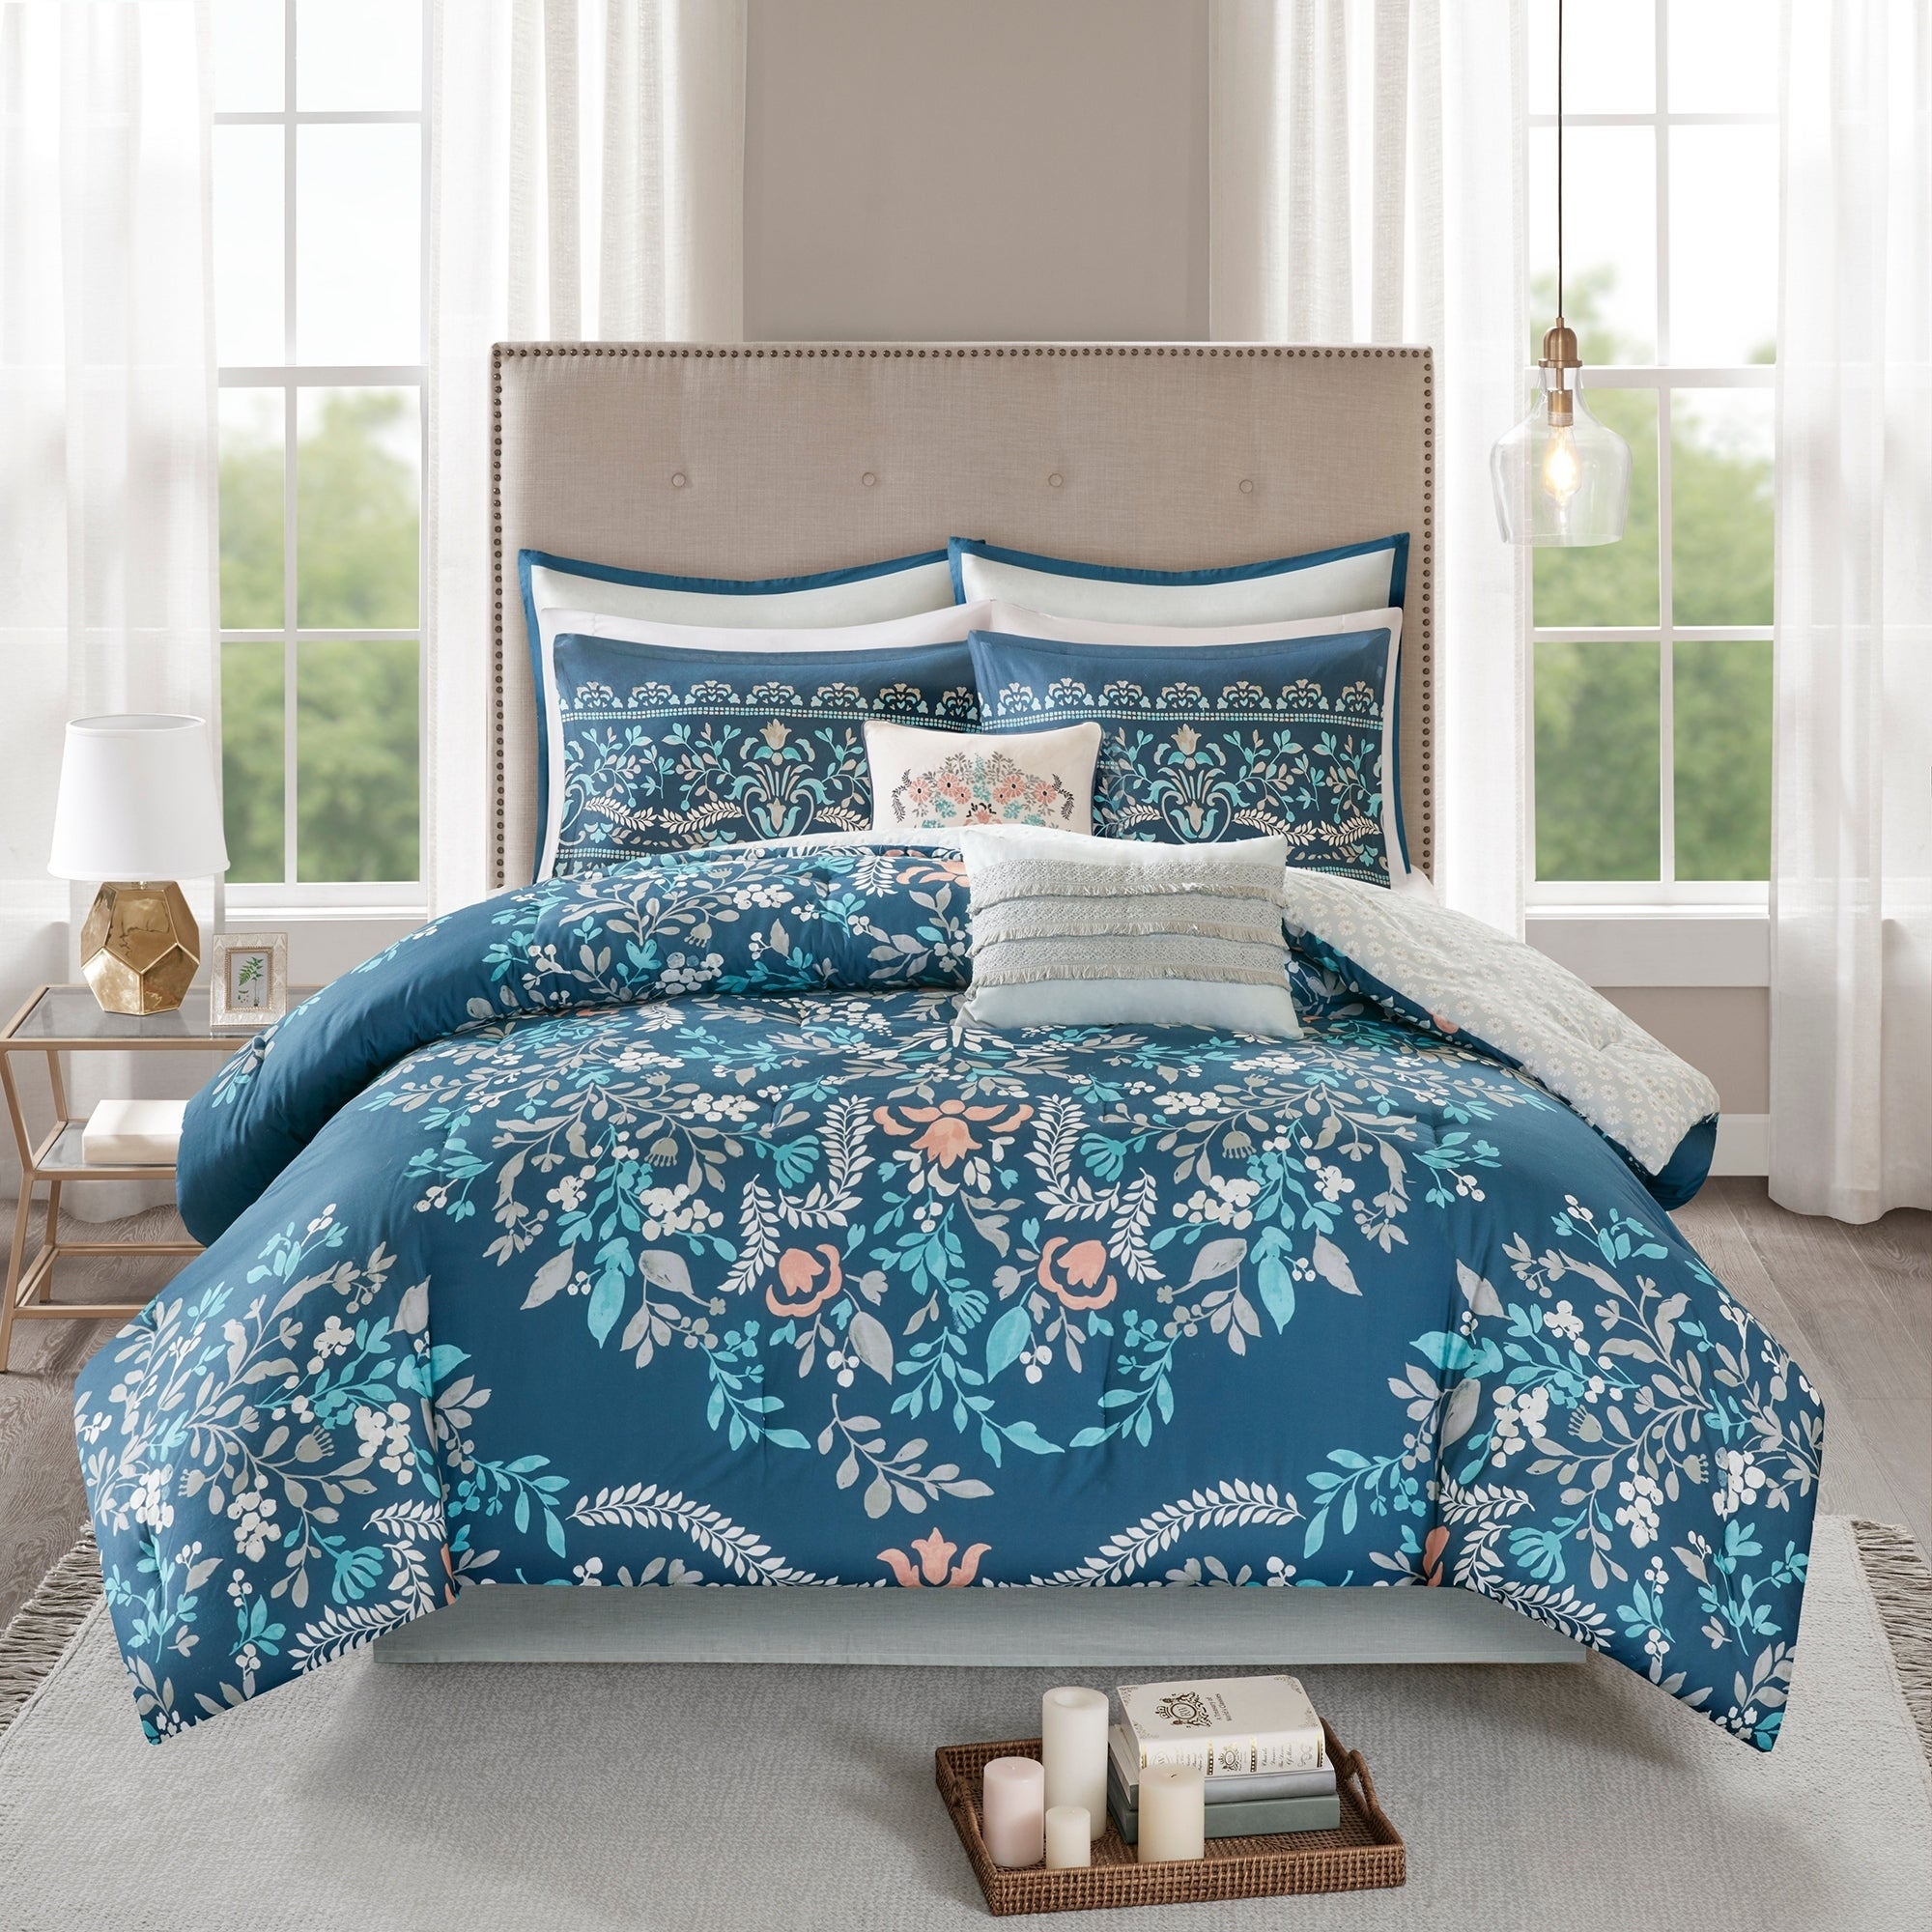 Madison Park Melora 8 Piece Cotton Printed Reversible Comforter Set pertaining to Melora 1-Light Single Geometric Pendants (Image 17 of 30)